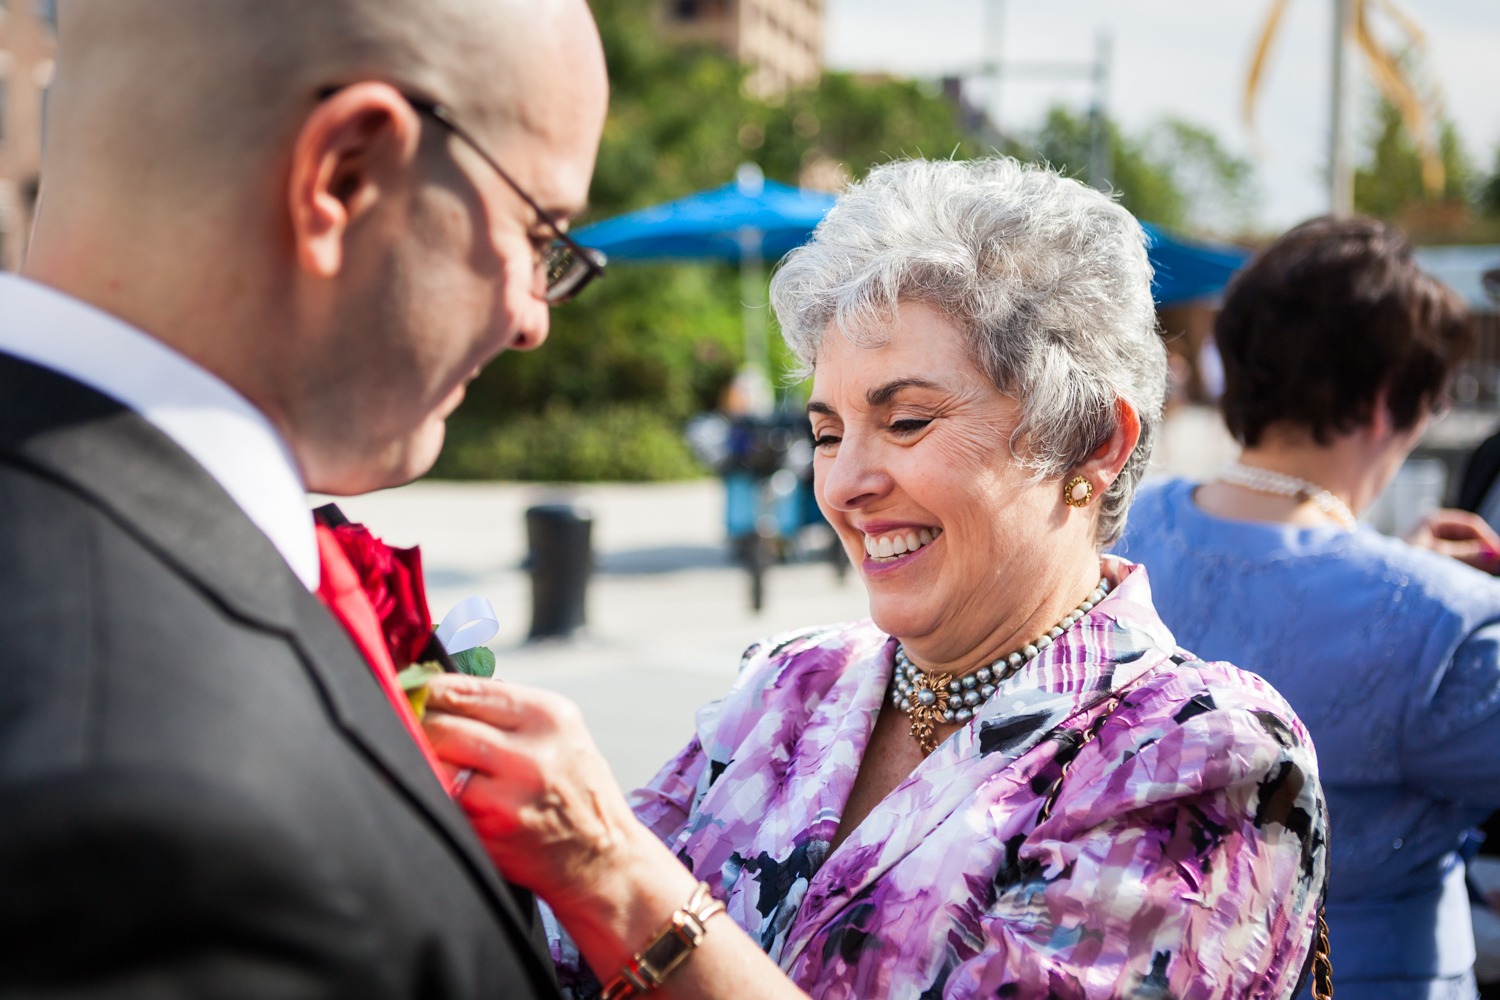 Mother putting boutonniere on groom